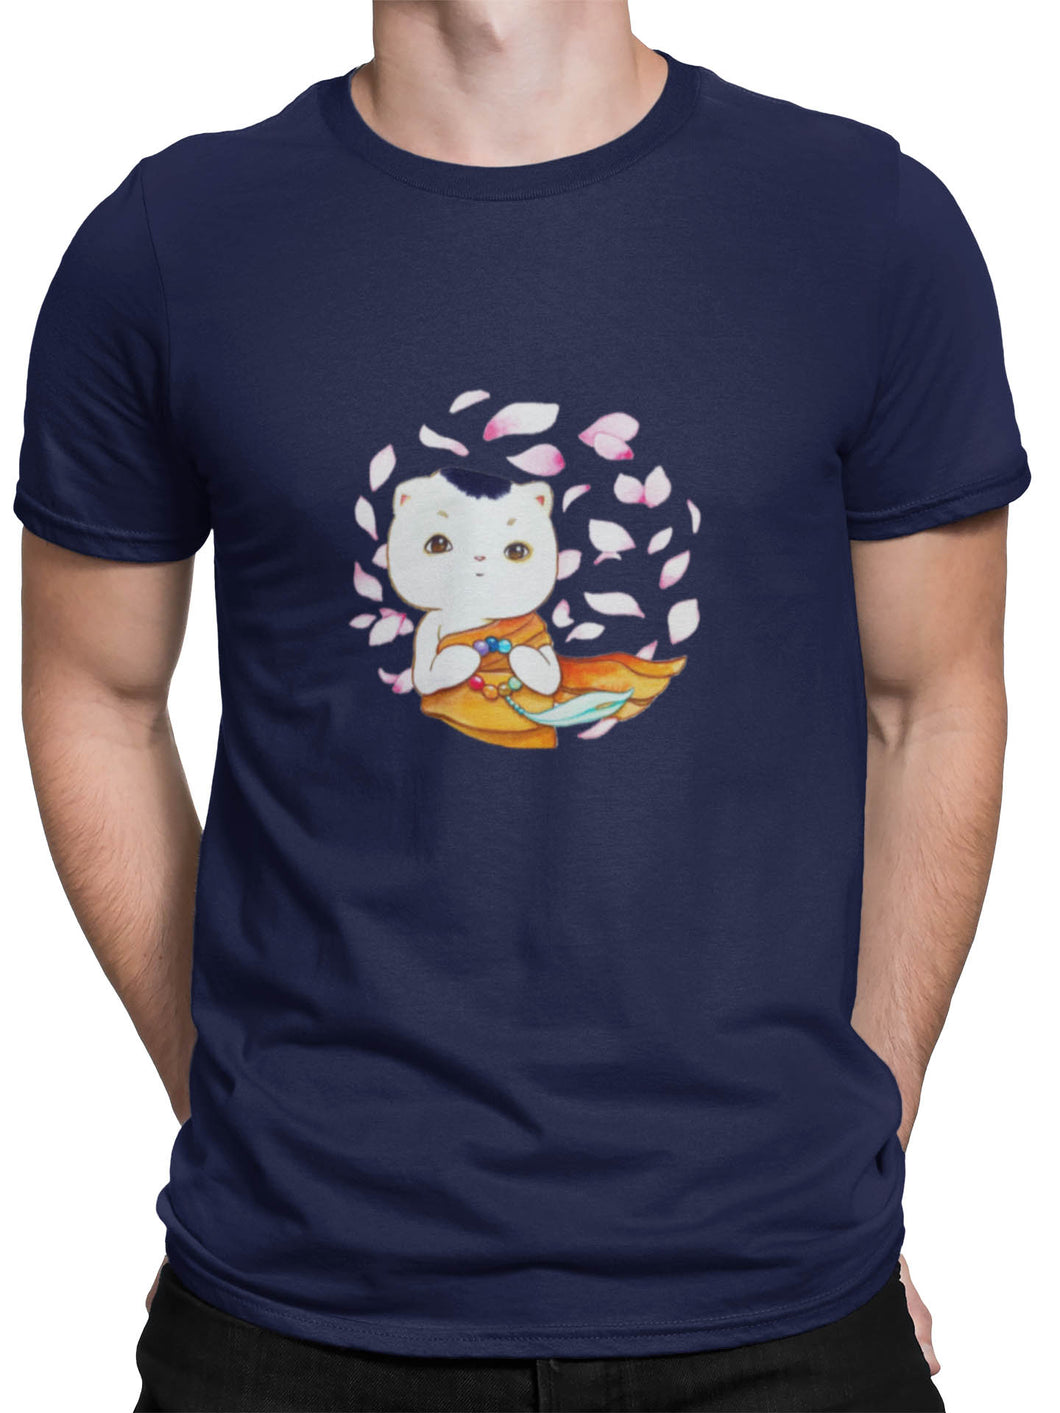 Monk Cat Tee - Men